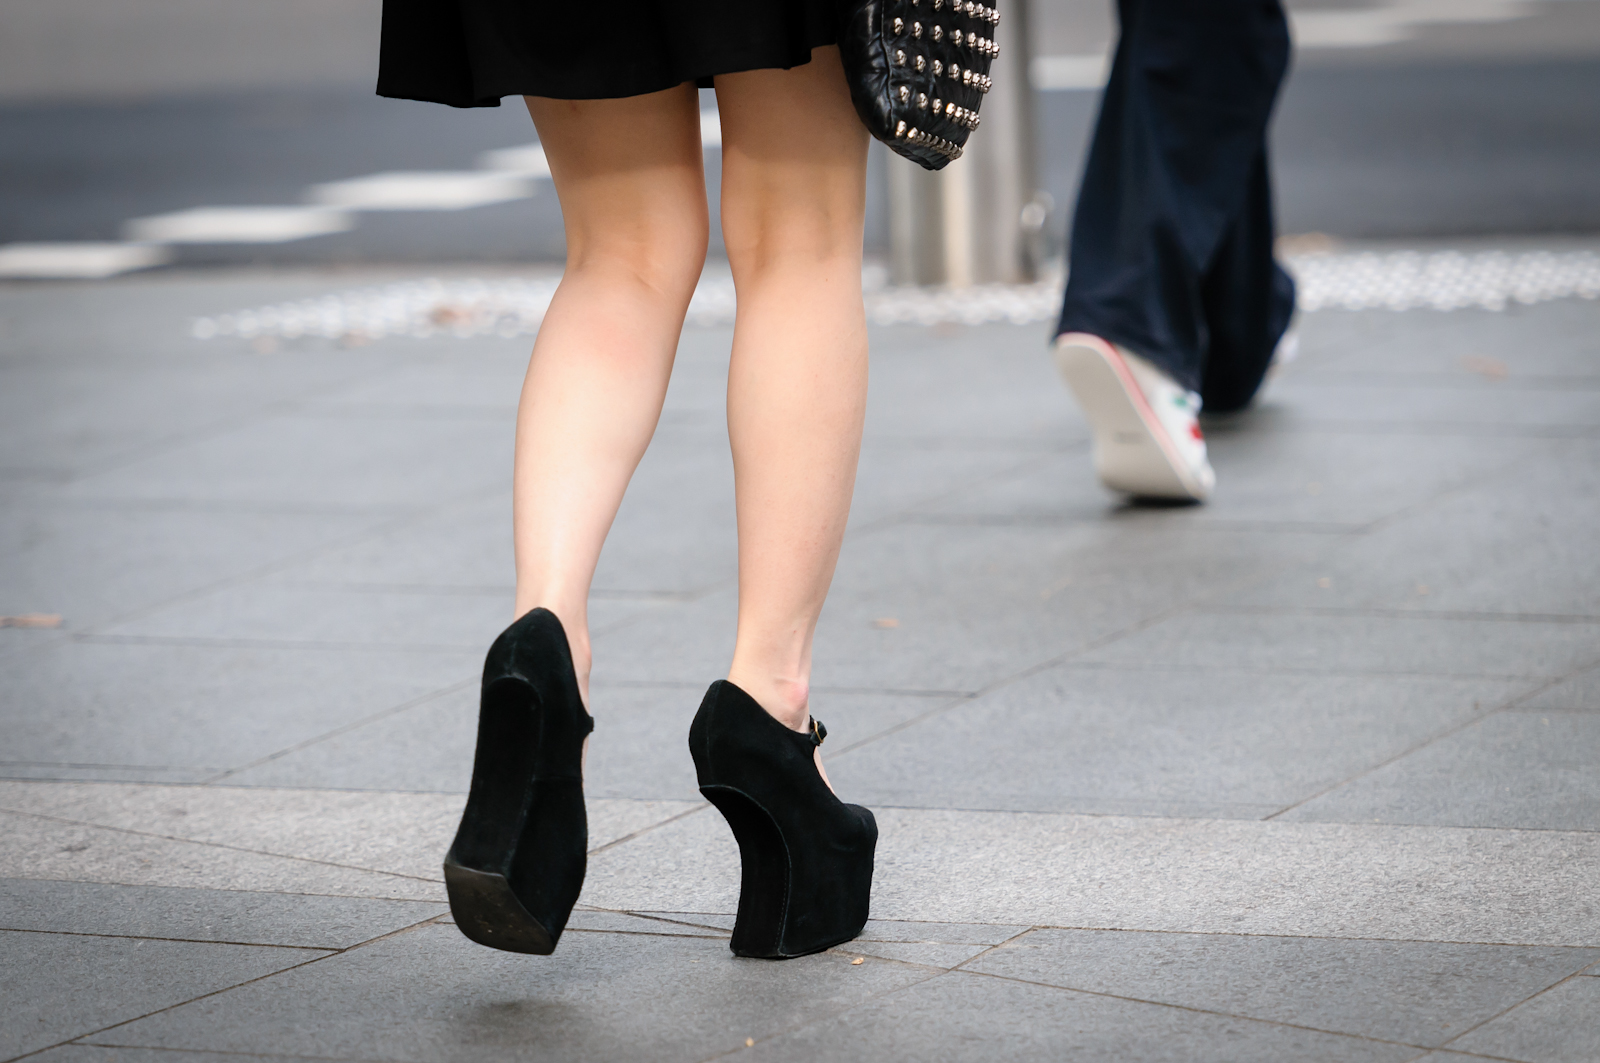 Street photography - Heels without heels